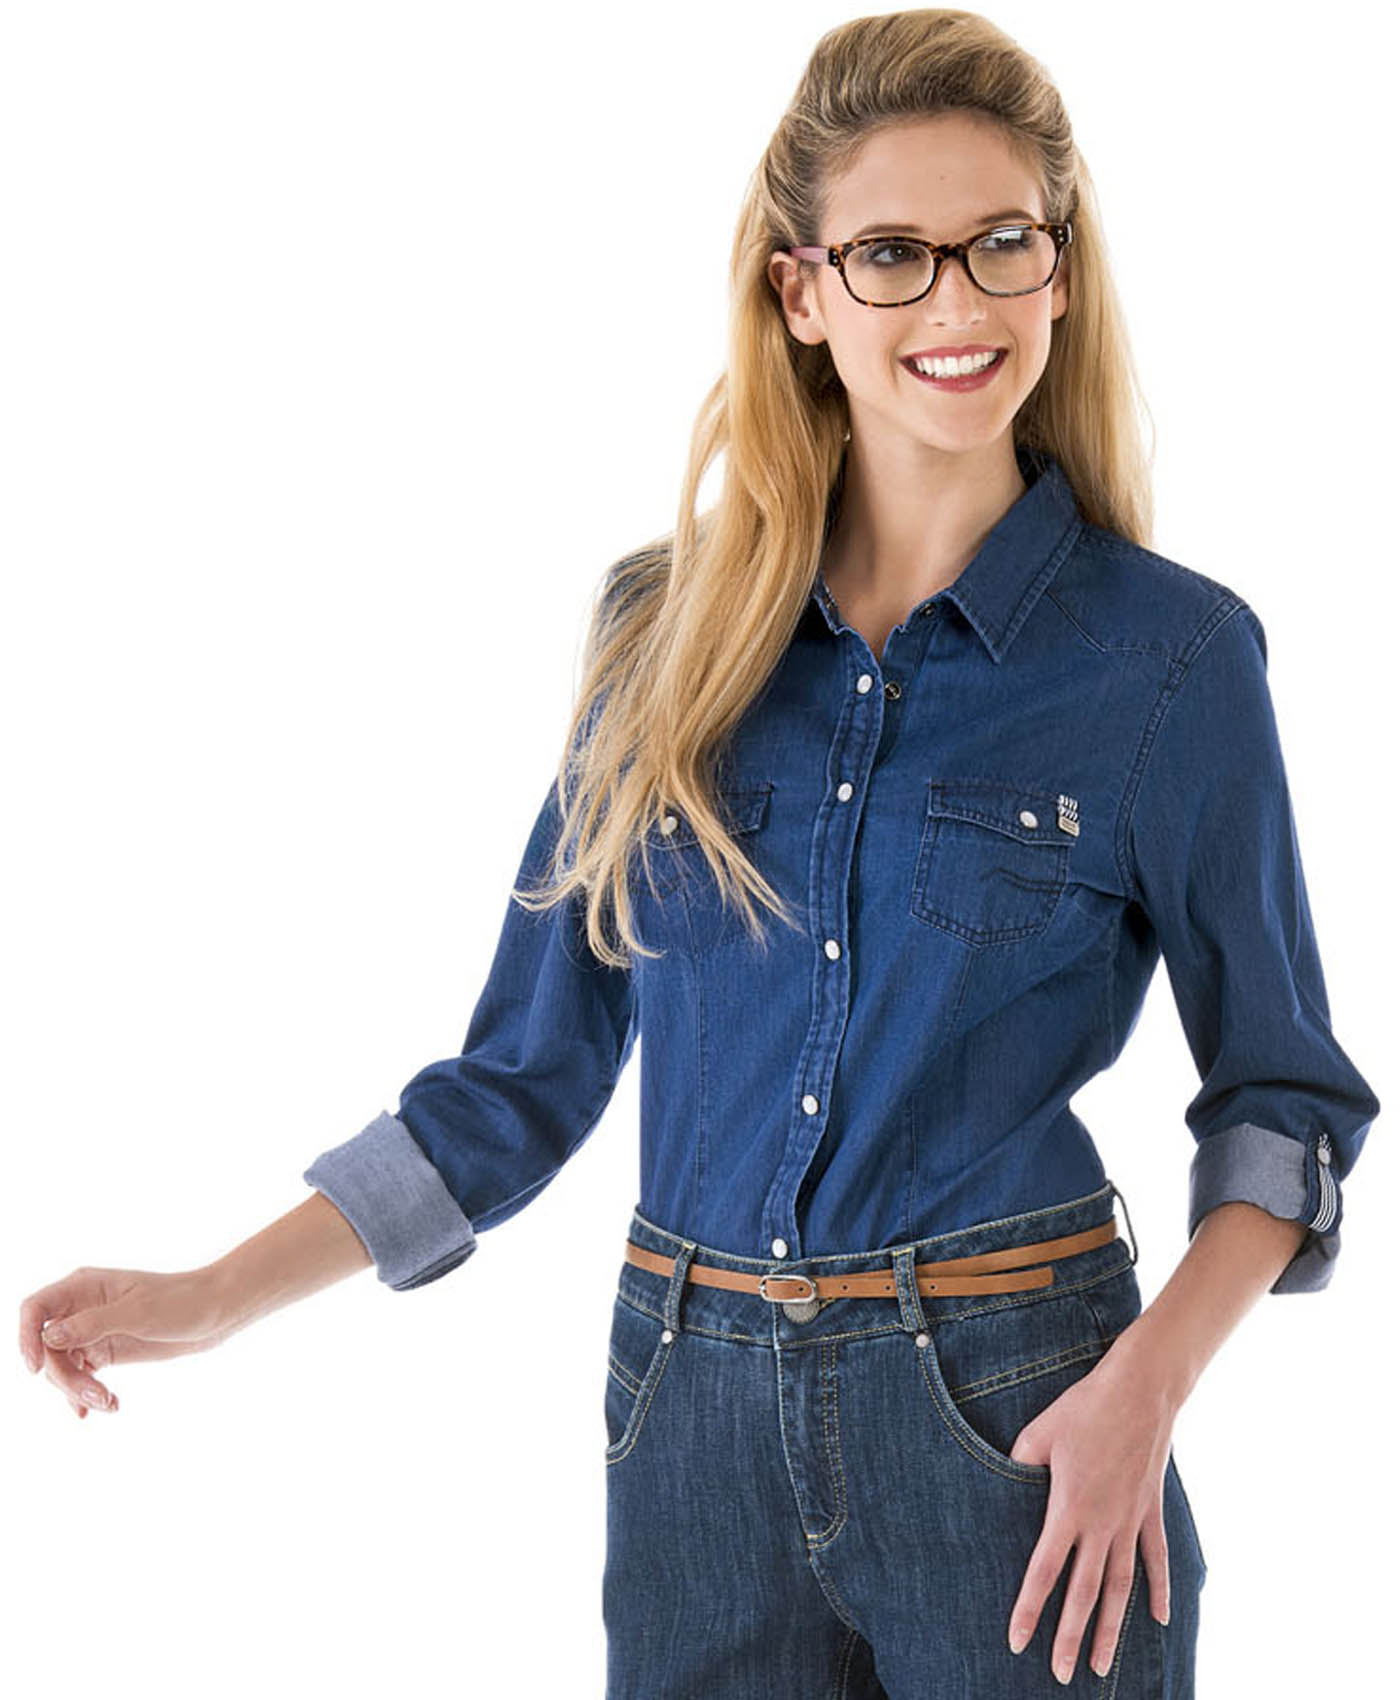 chemise femme denim bleu chemisier tunique blouse mode femme terre de marins. Black Bedroom Furniture Sets. Home Design Ideas